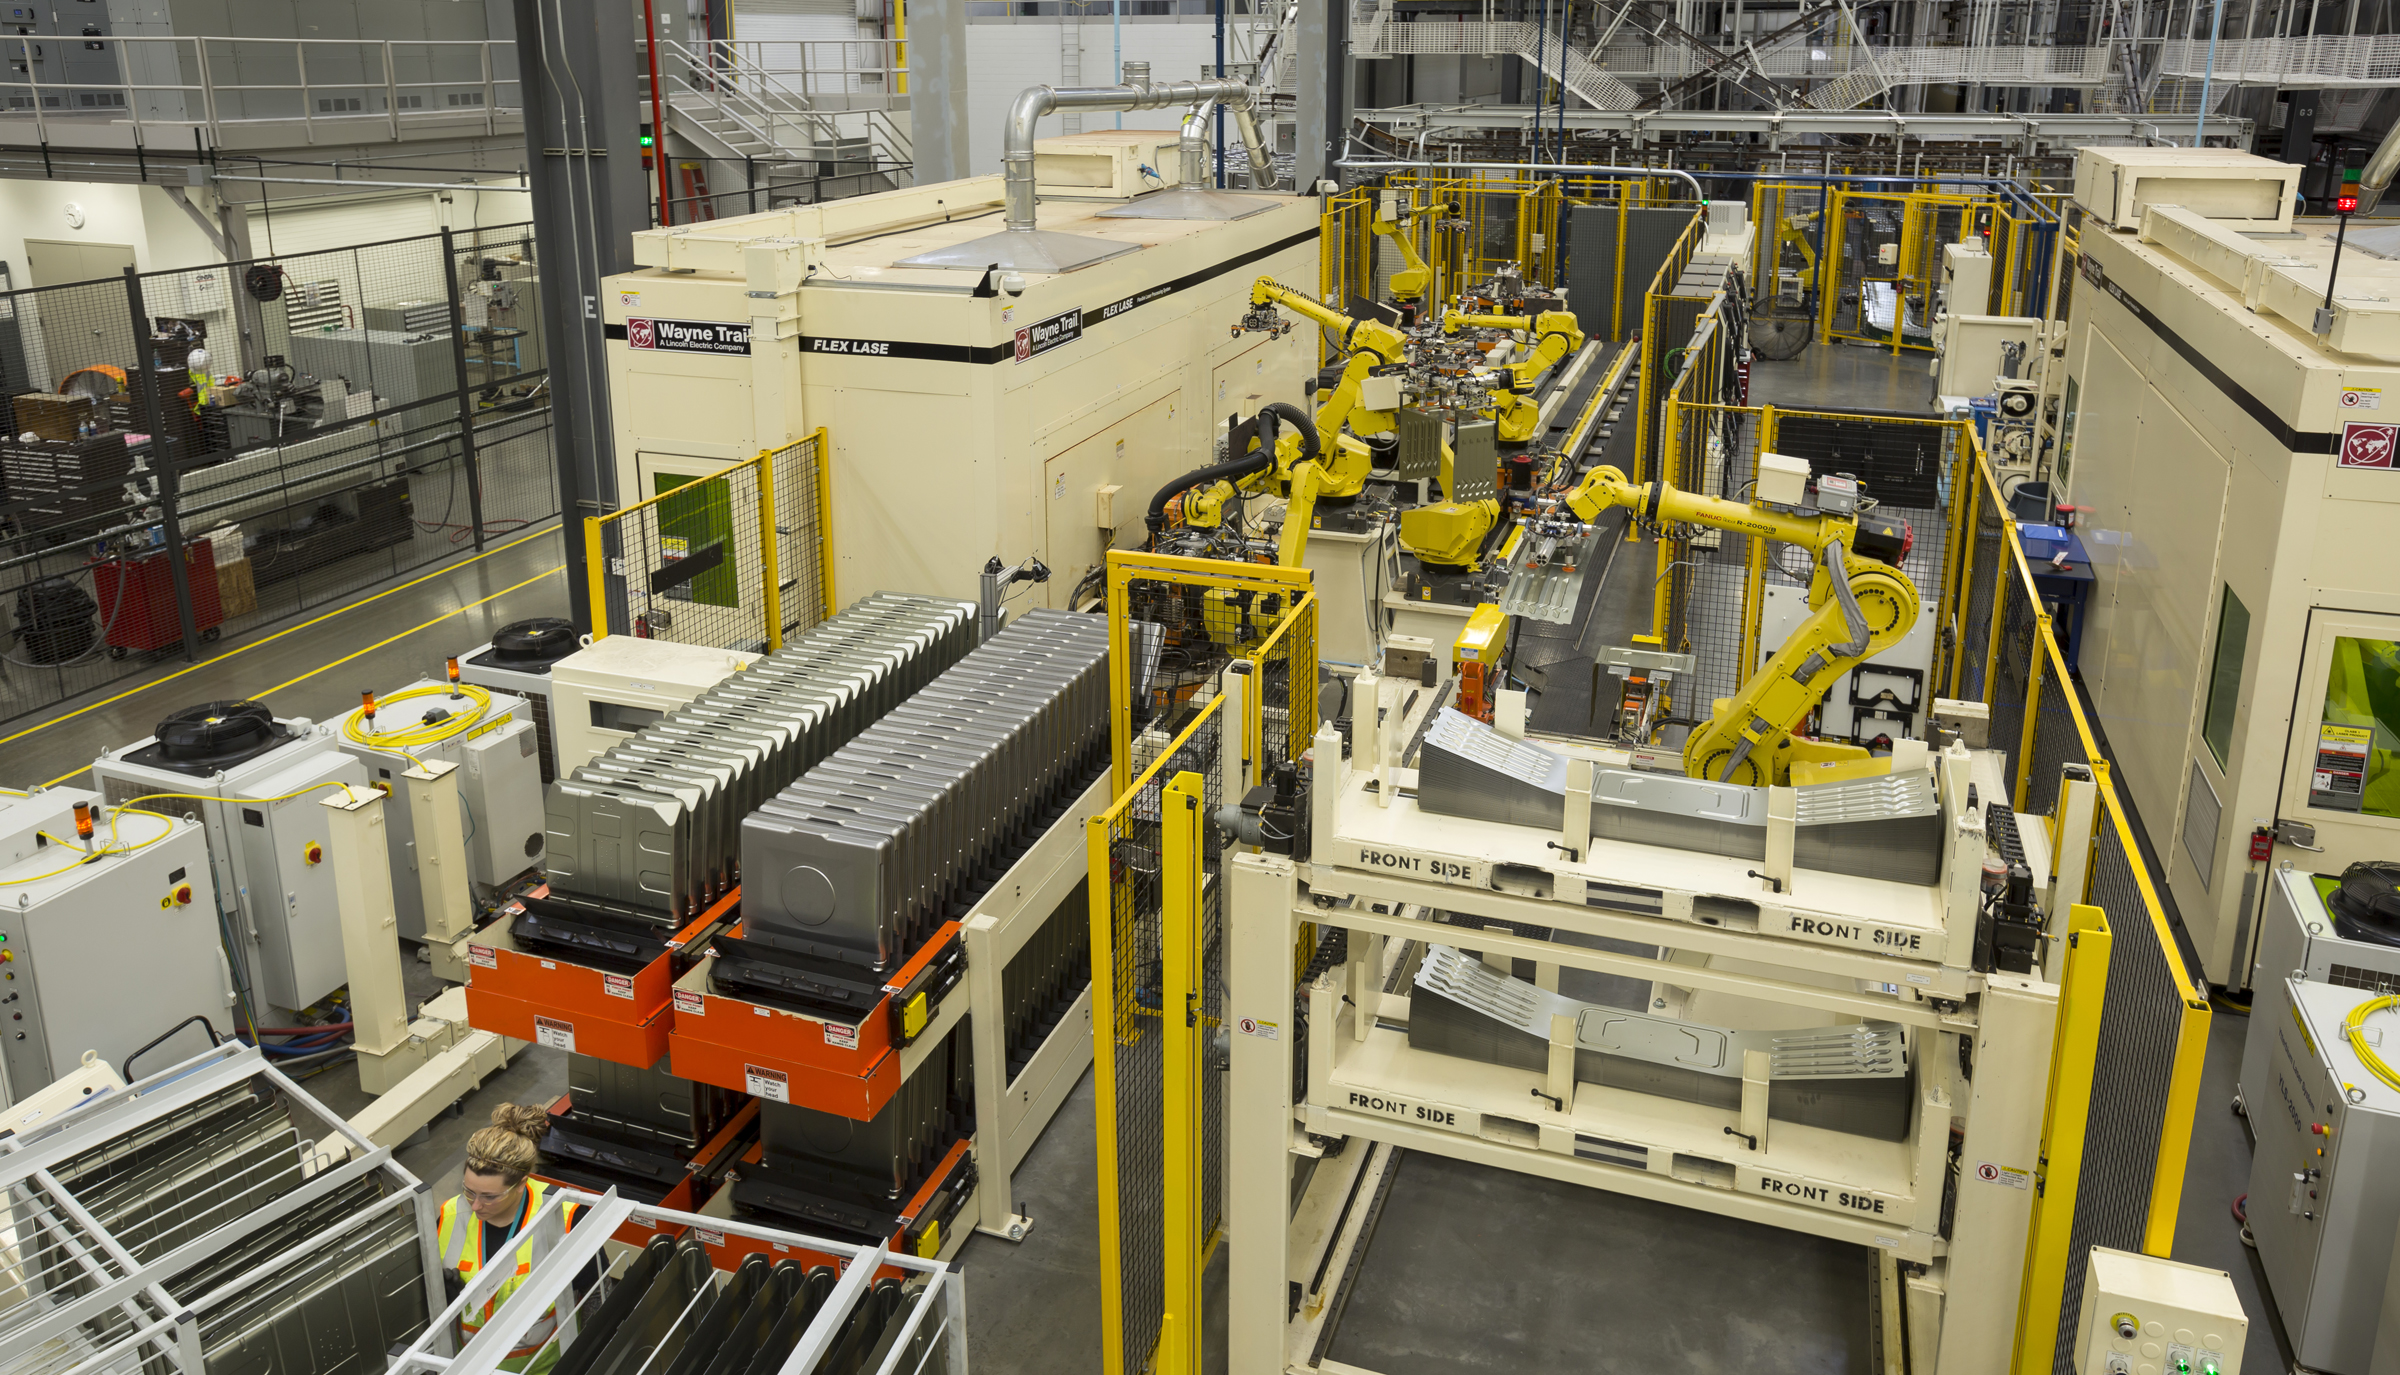 Electrolux Oven Factory With Wayne Trail Assembly Line Sine